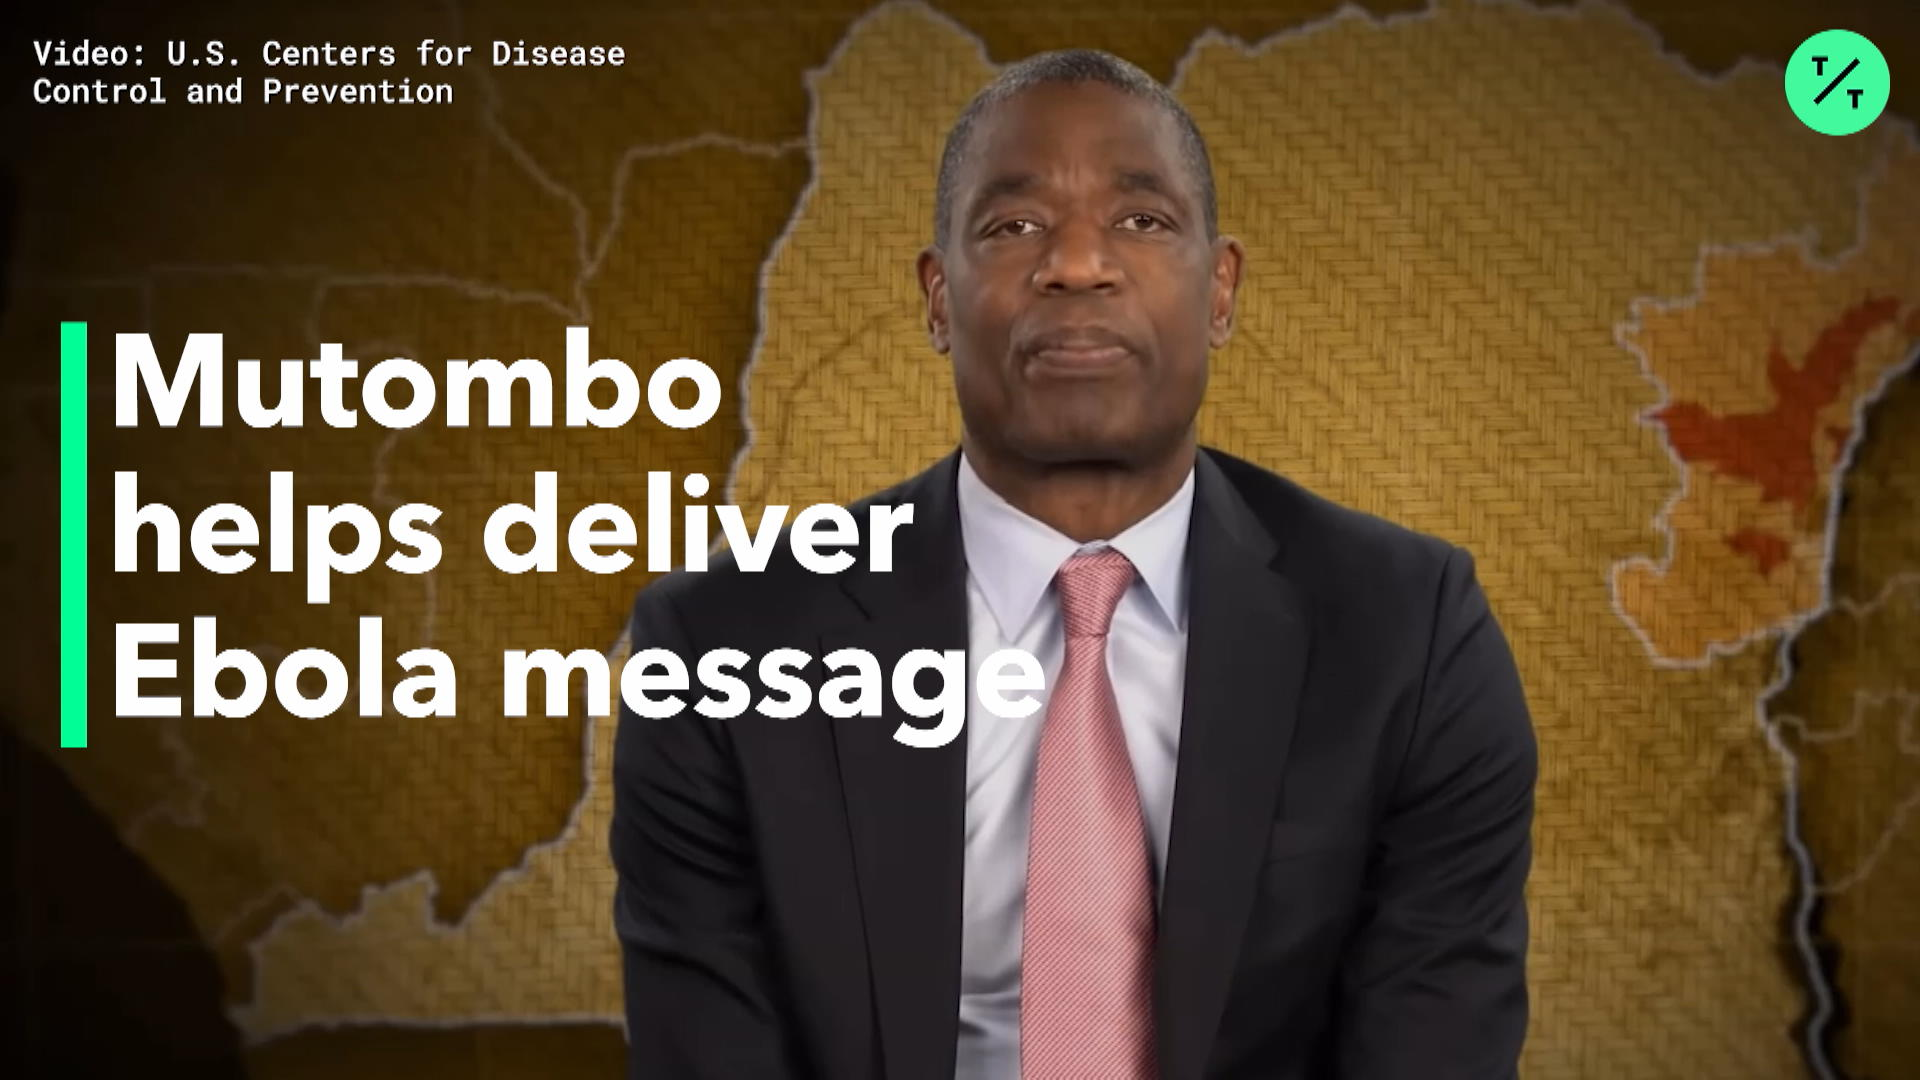 NBA's Mutombo Delivers Ebola Message